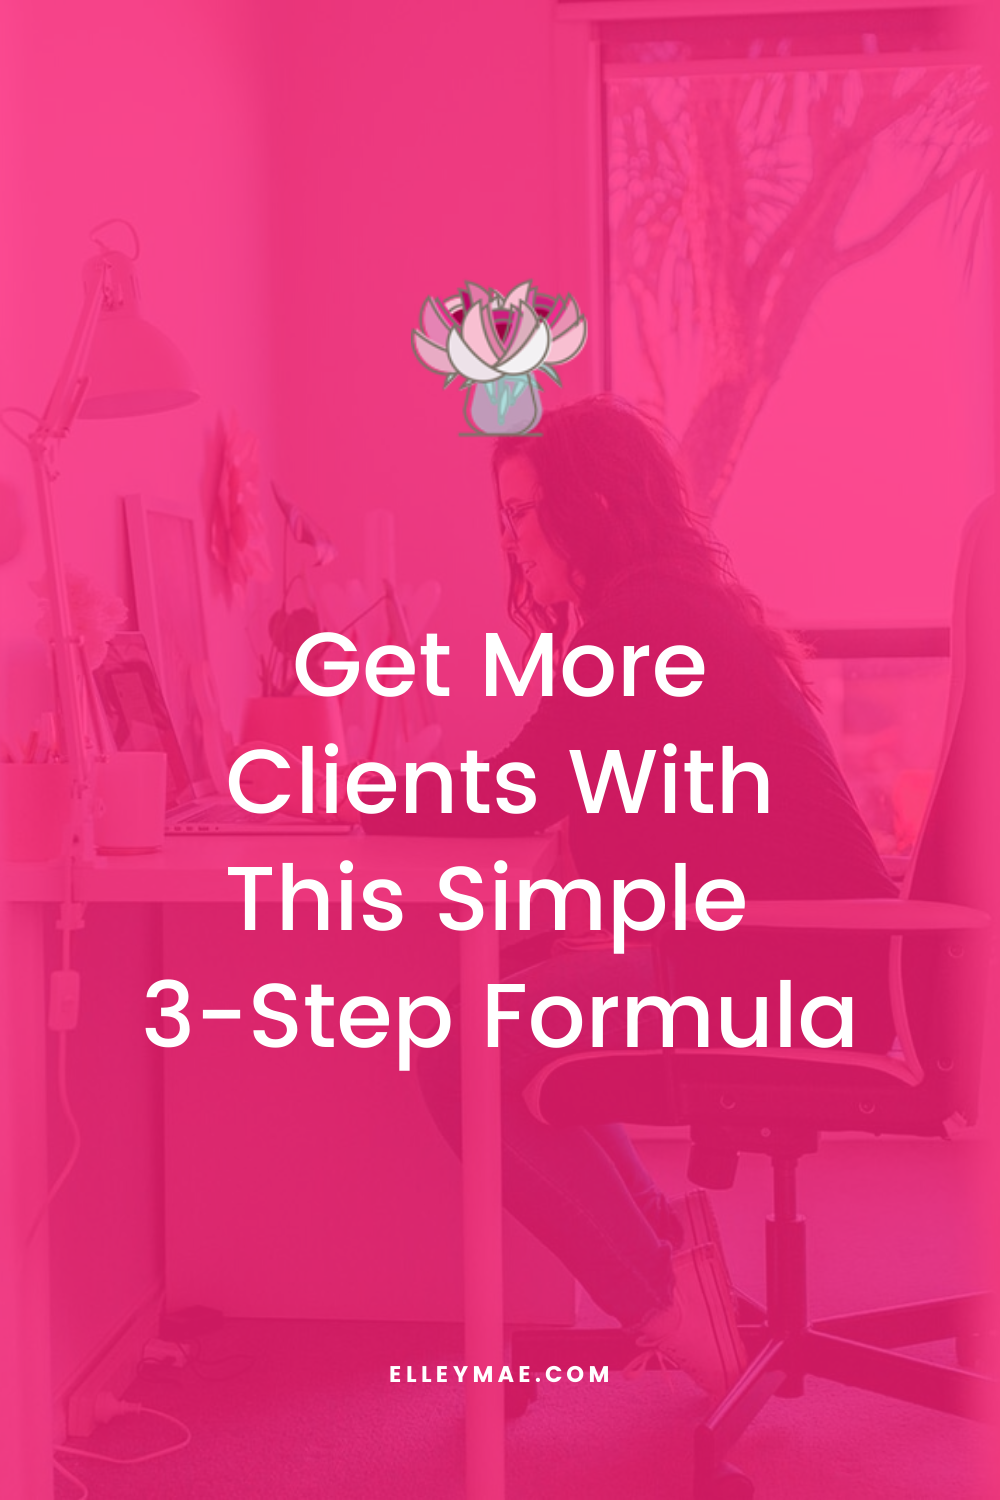 Get More Clients With This 3-Step Formula